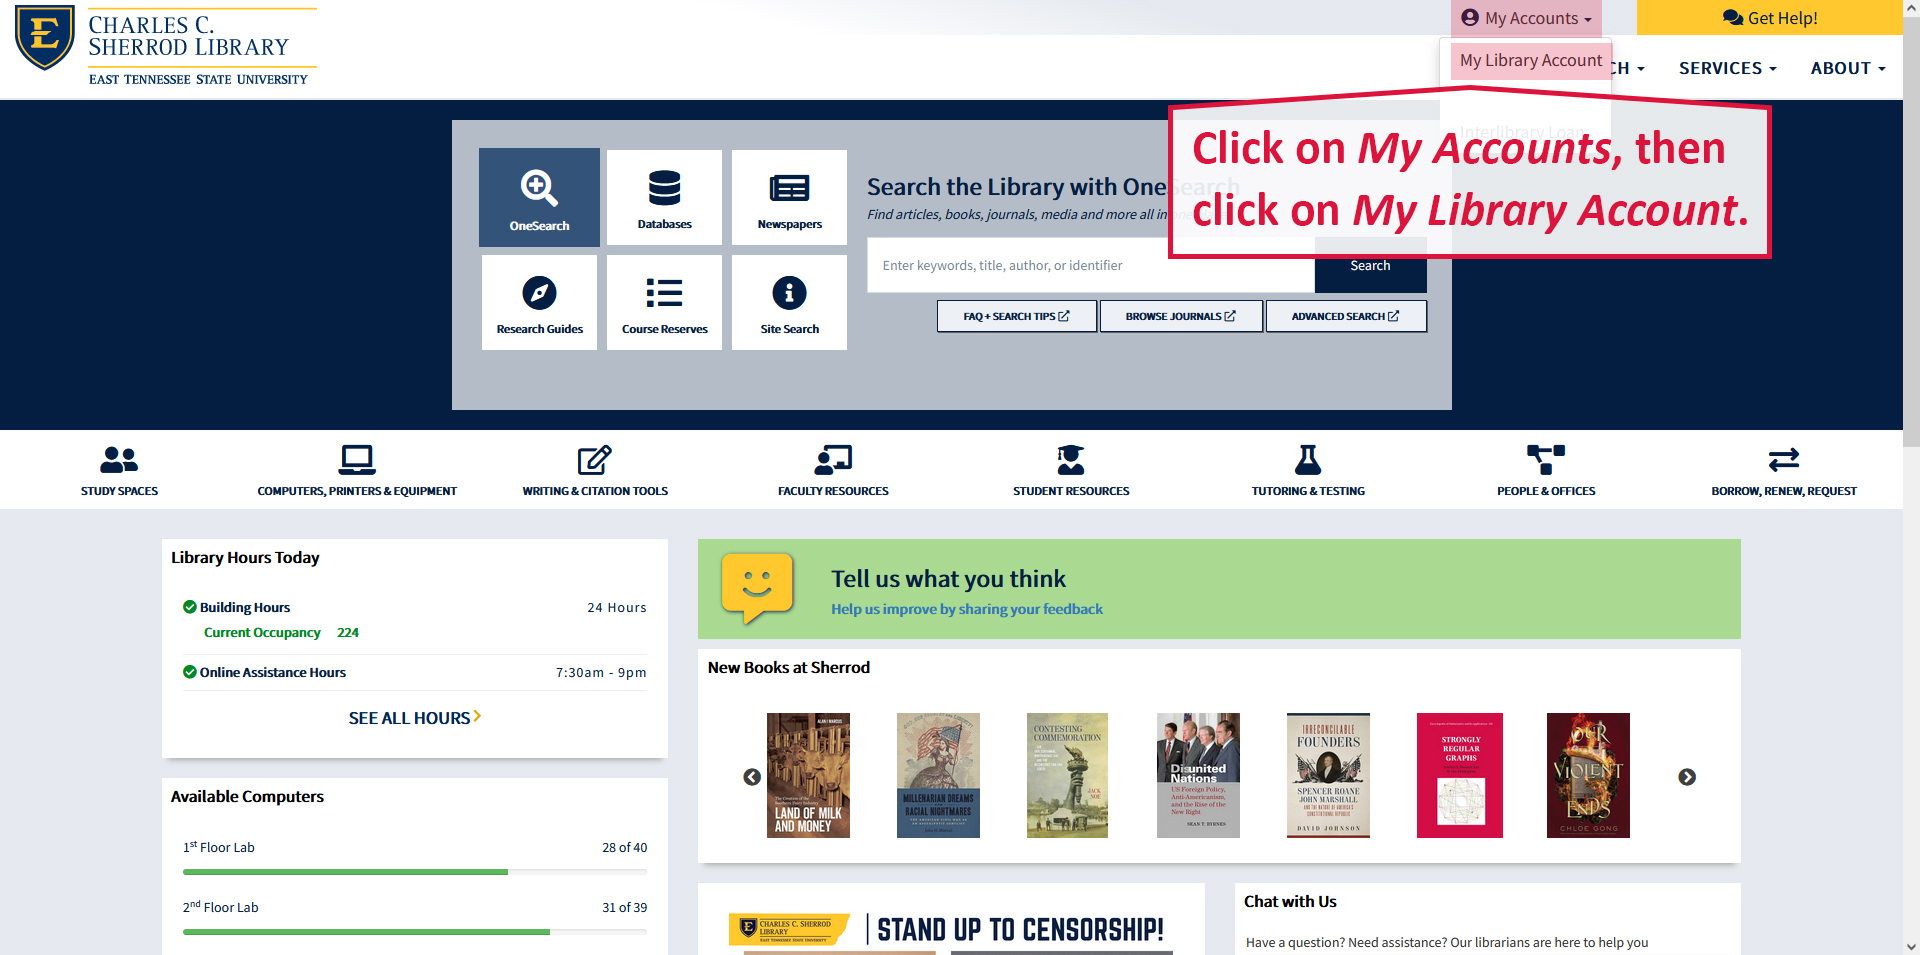 A screenshot illustrating how to access your library account from the library homepage.